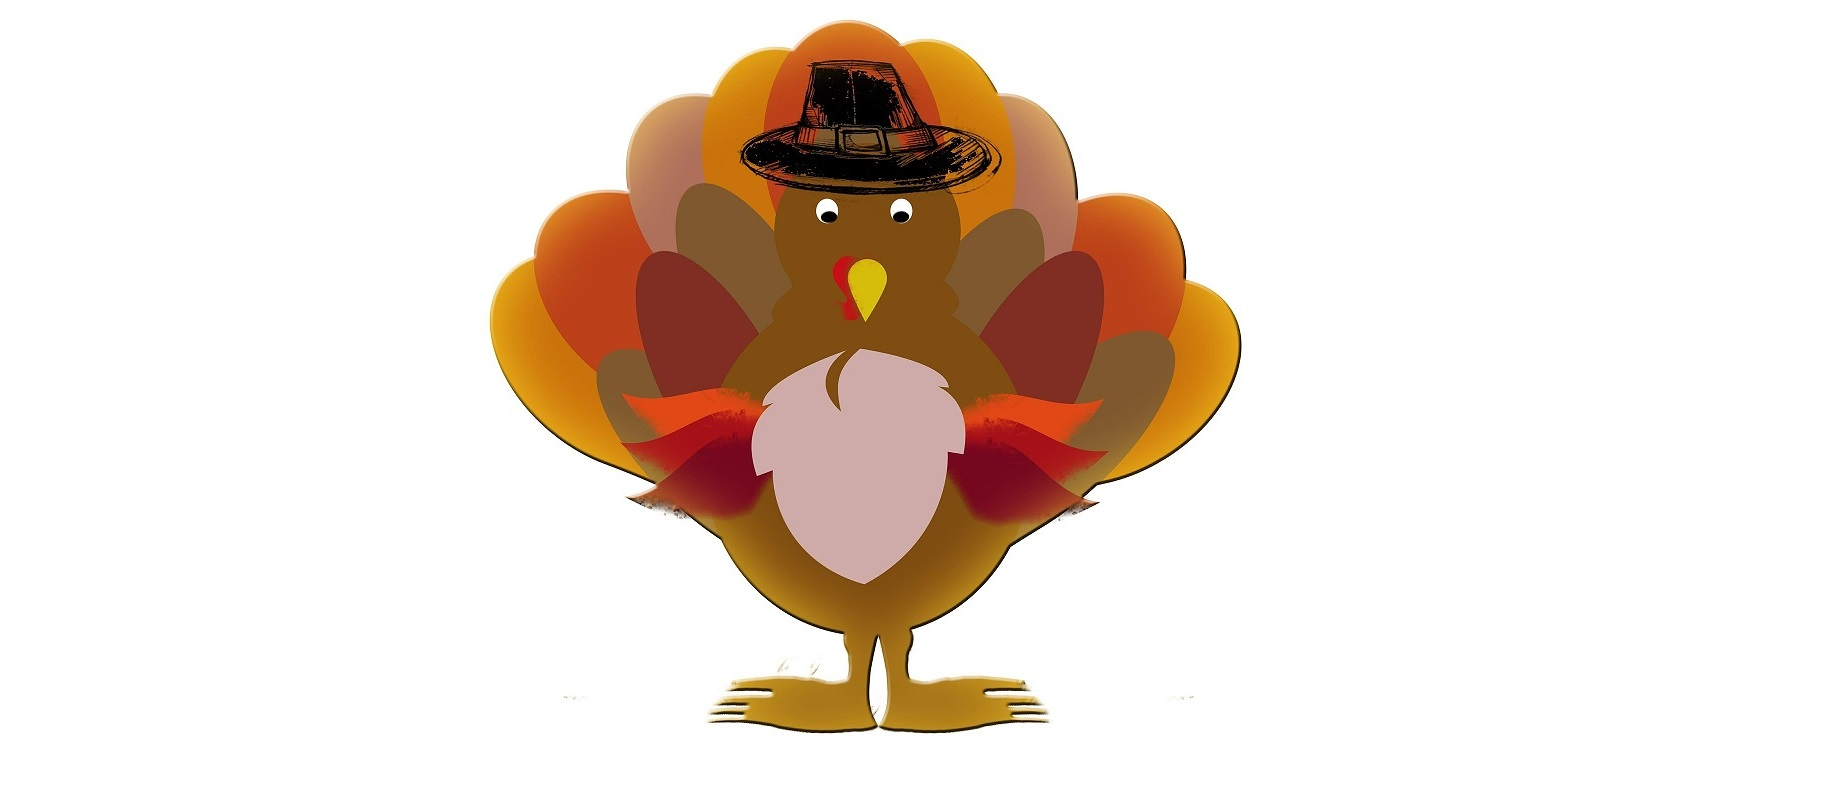 An image of a turkey with a hat